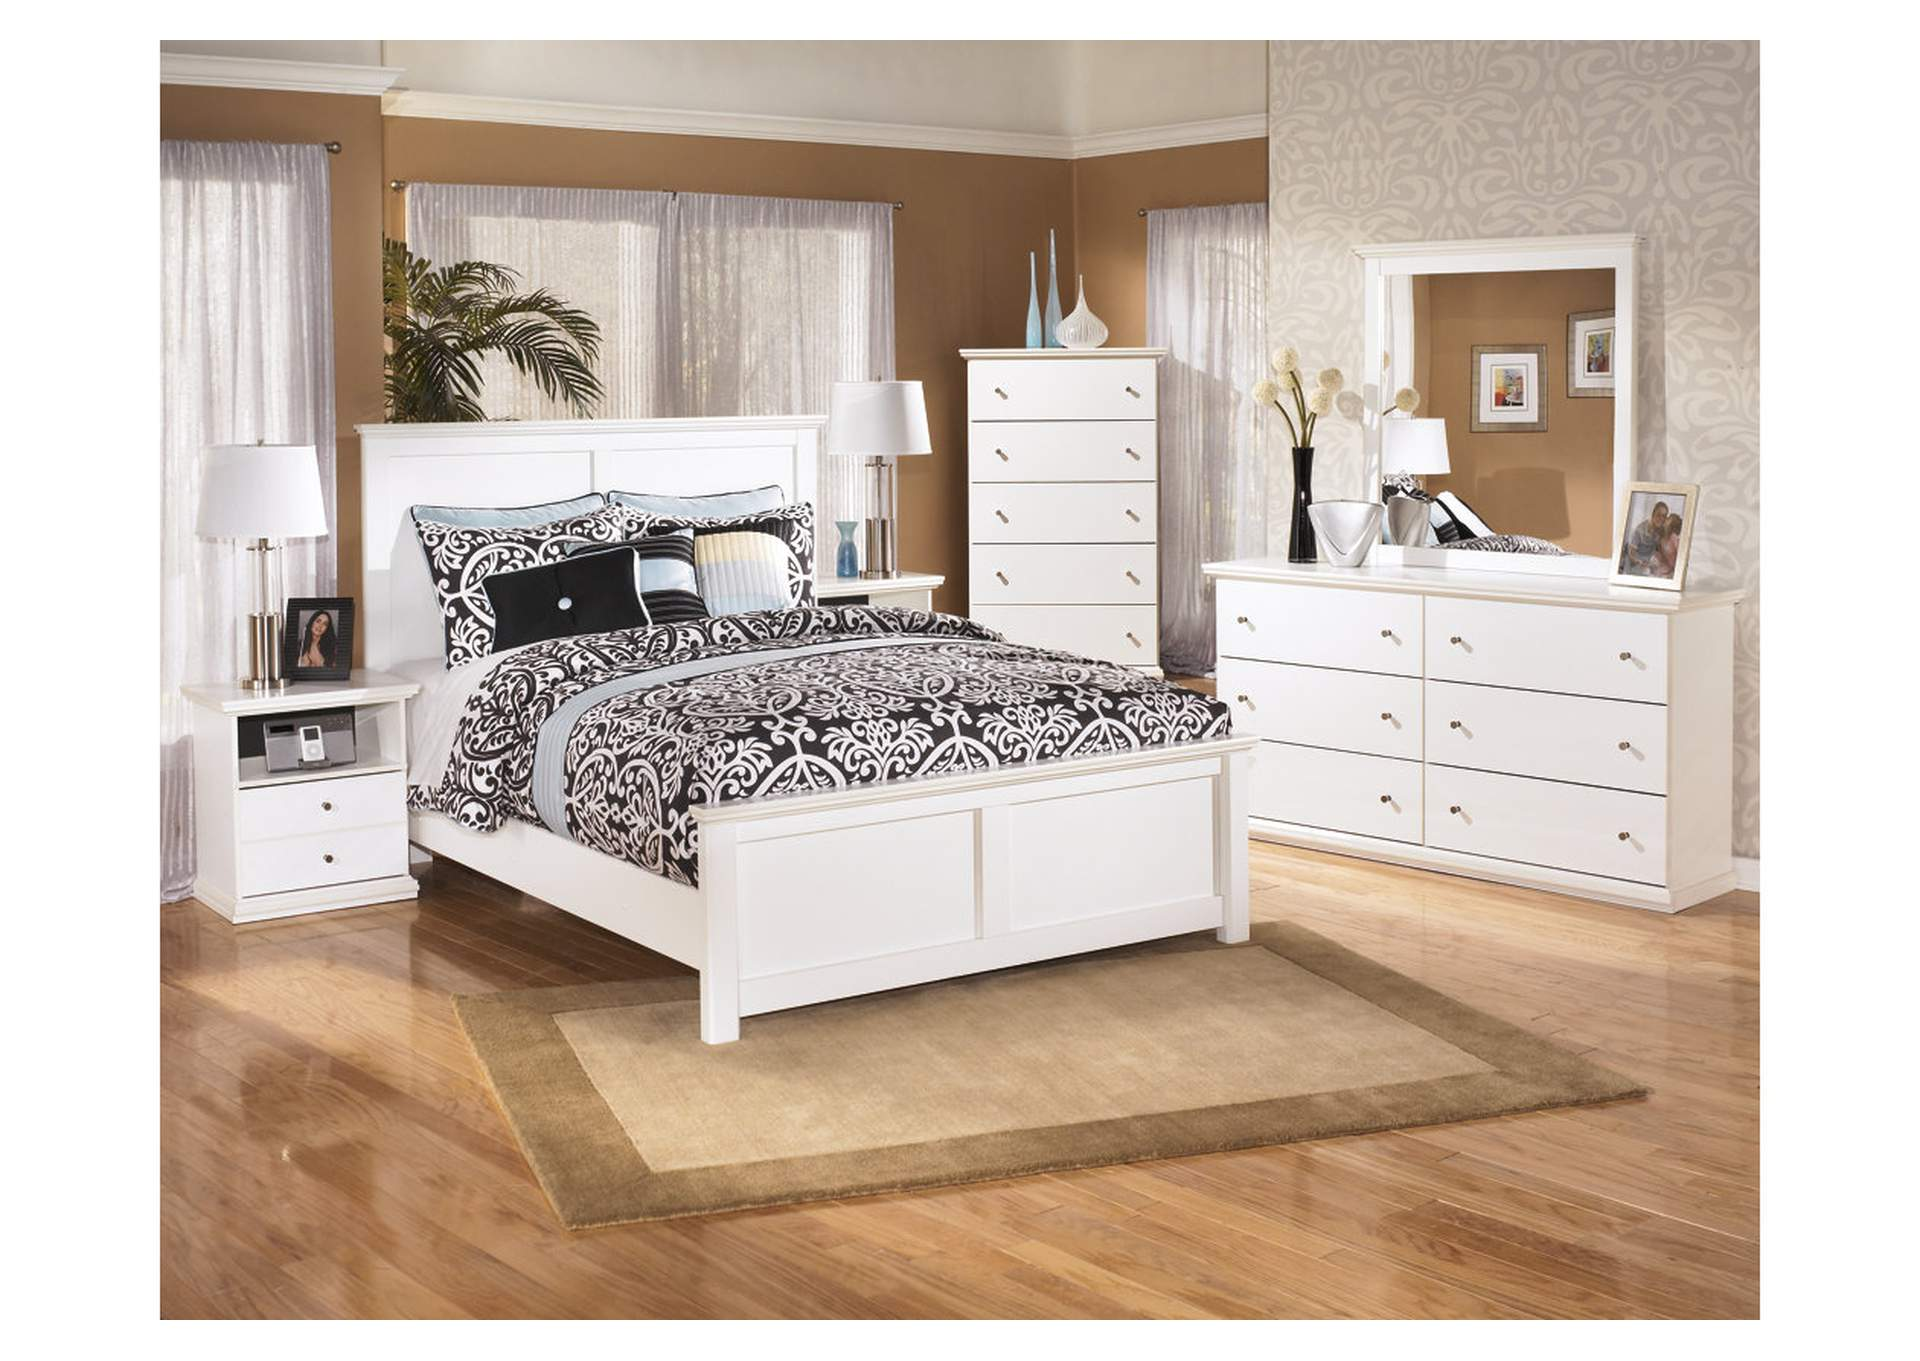 Bostwick Shoals King Panel Bed w/Dresser & Mirror,Signature Design By Ashley